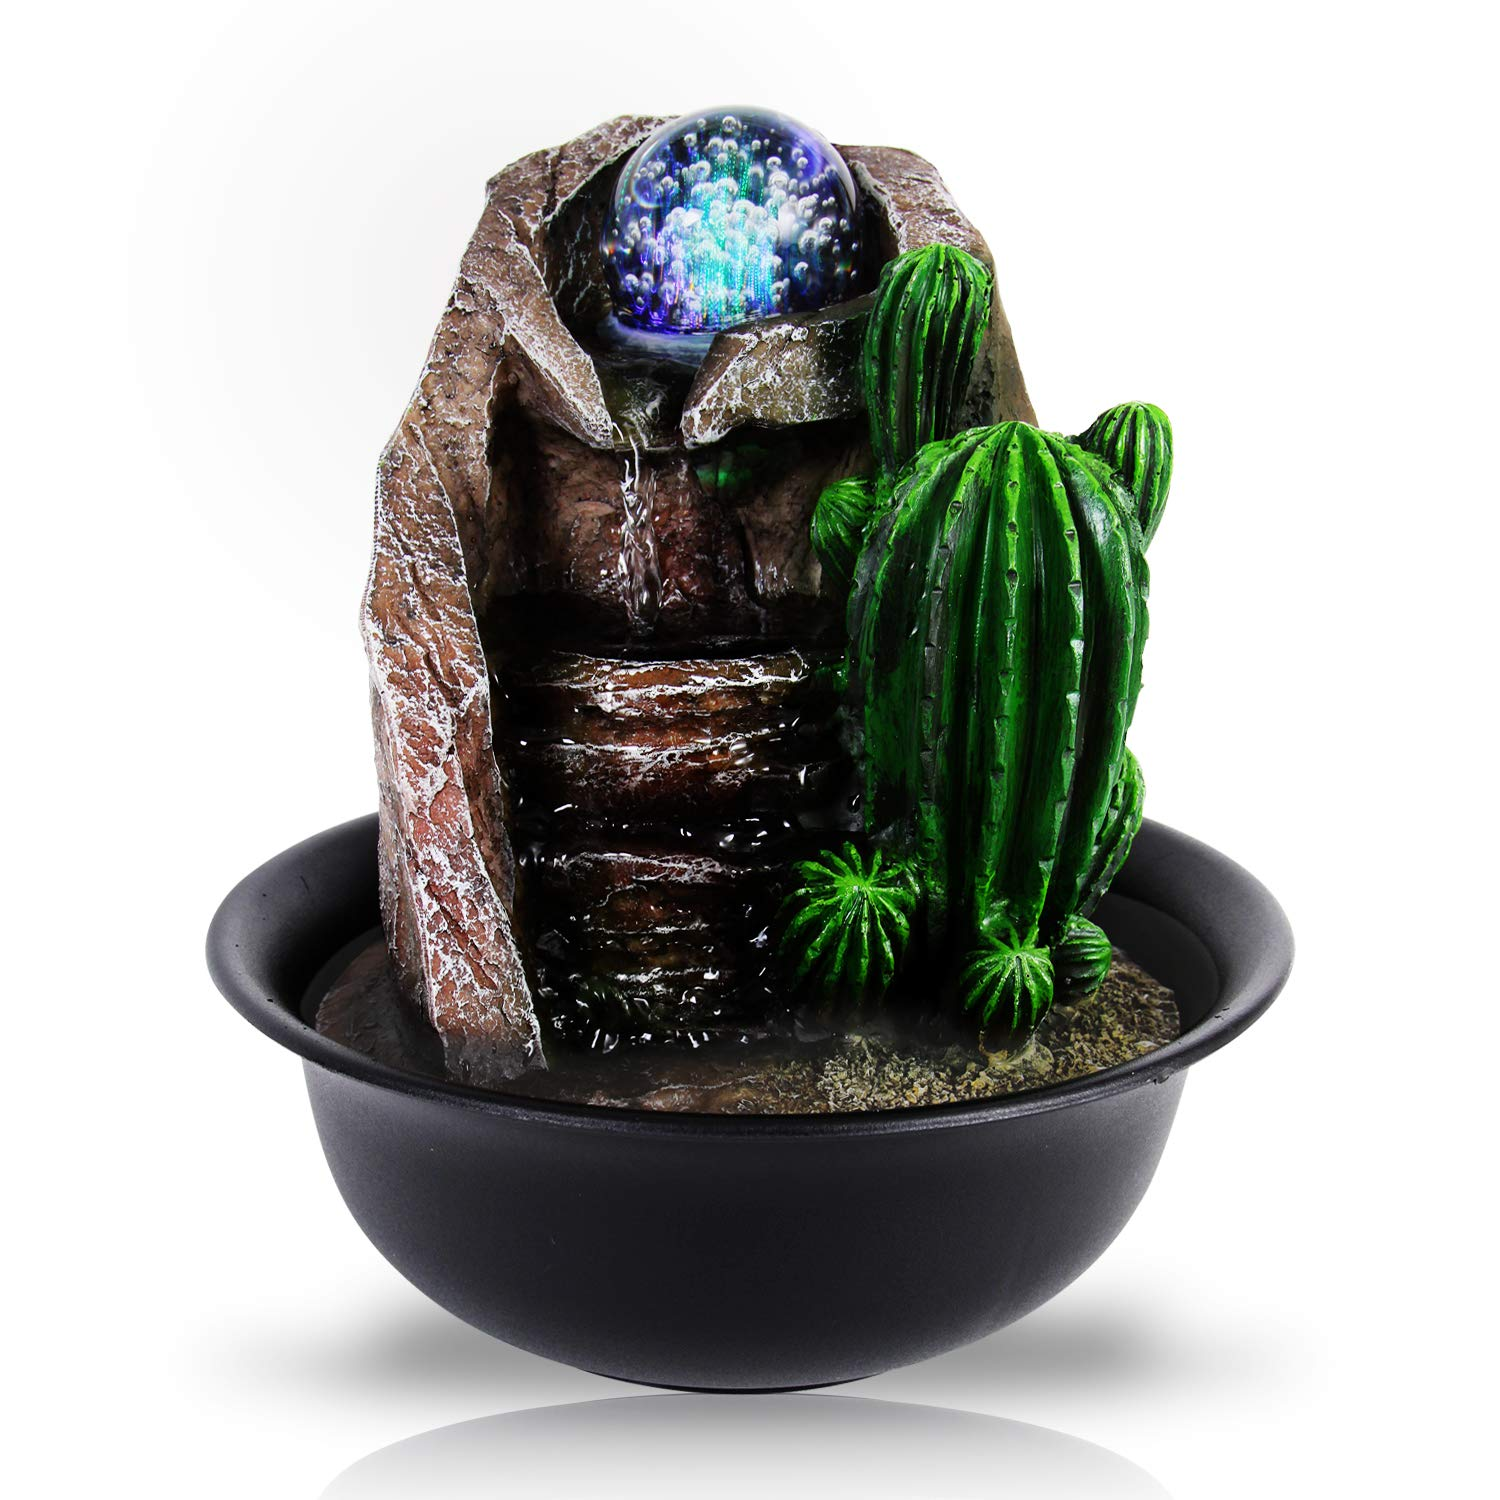 Electric Tabletop Water Fountain Decor - Desktop Decoration w/Illuminated Crystal Ball Accent, Indoor Outdoor Decorative Waterfall Kit Includes Submersible Pump, 12V Adapter - SereneLife